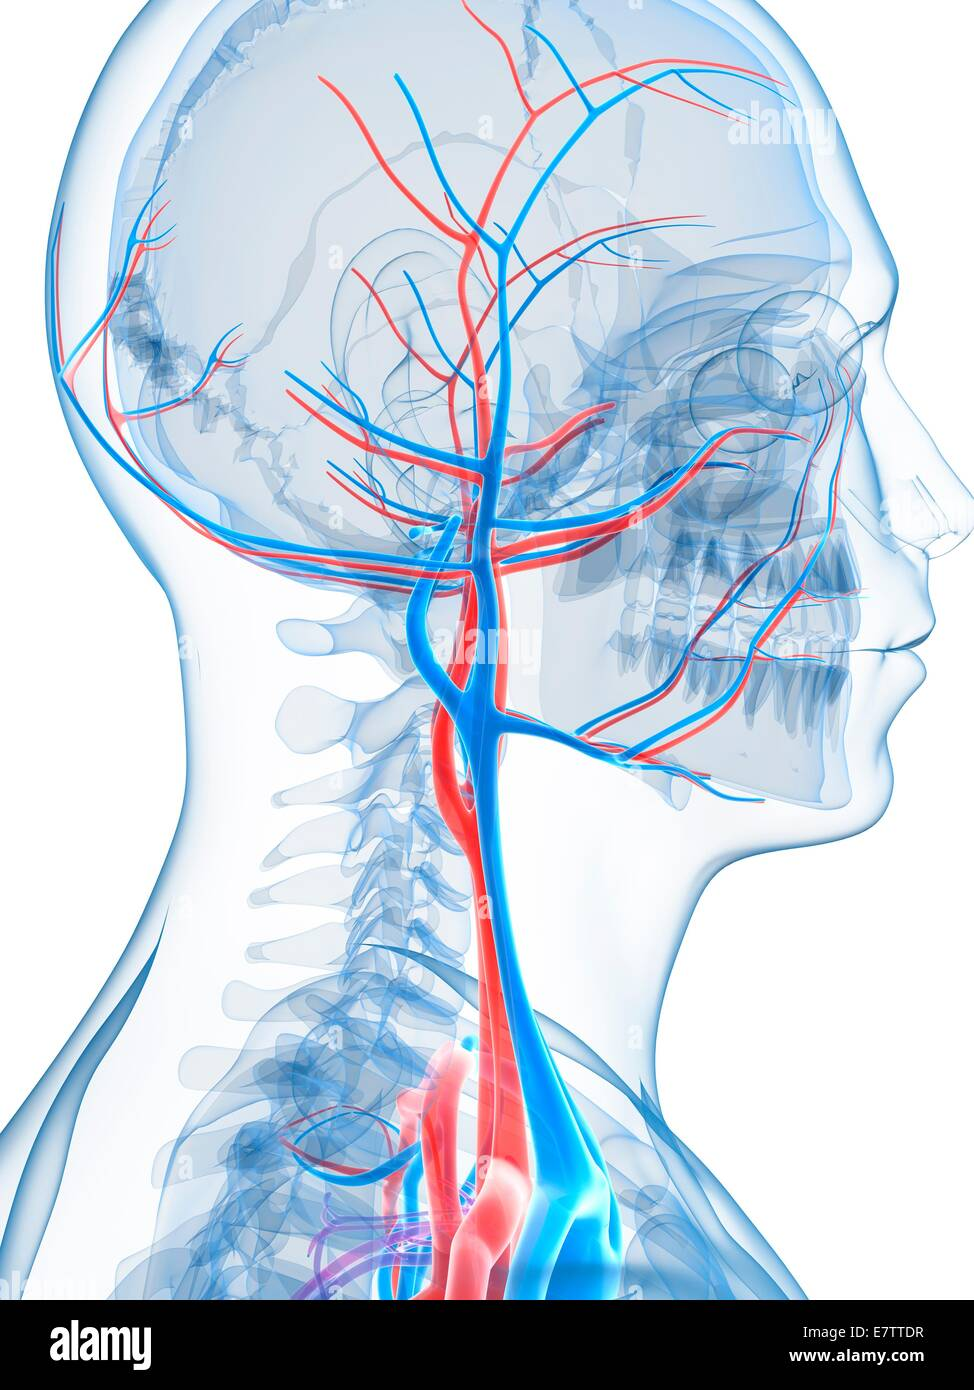 Human Vascular System Of The Head Computer Artwork Stock Photo